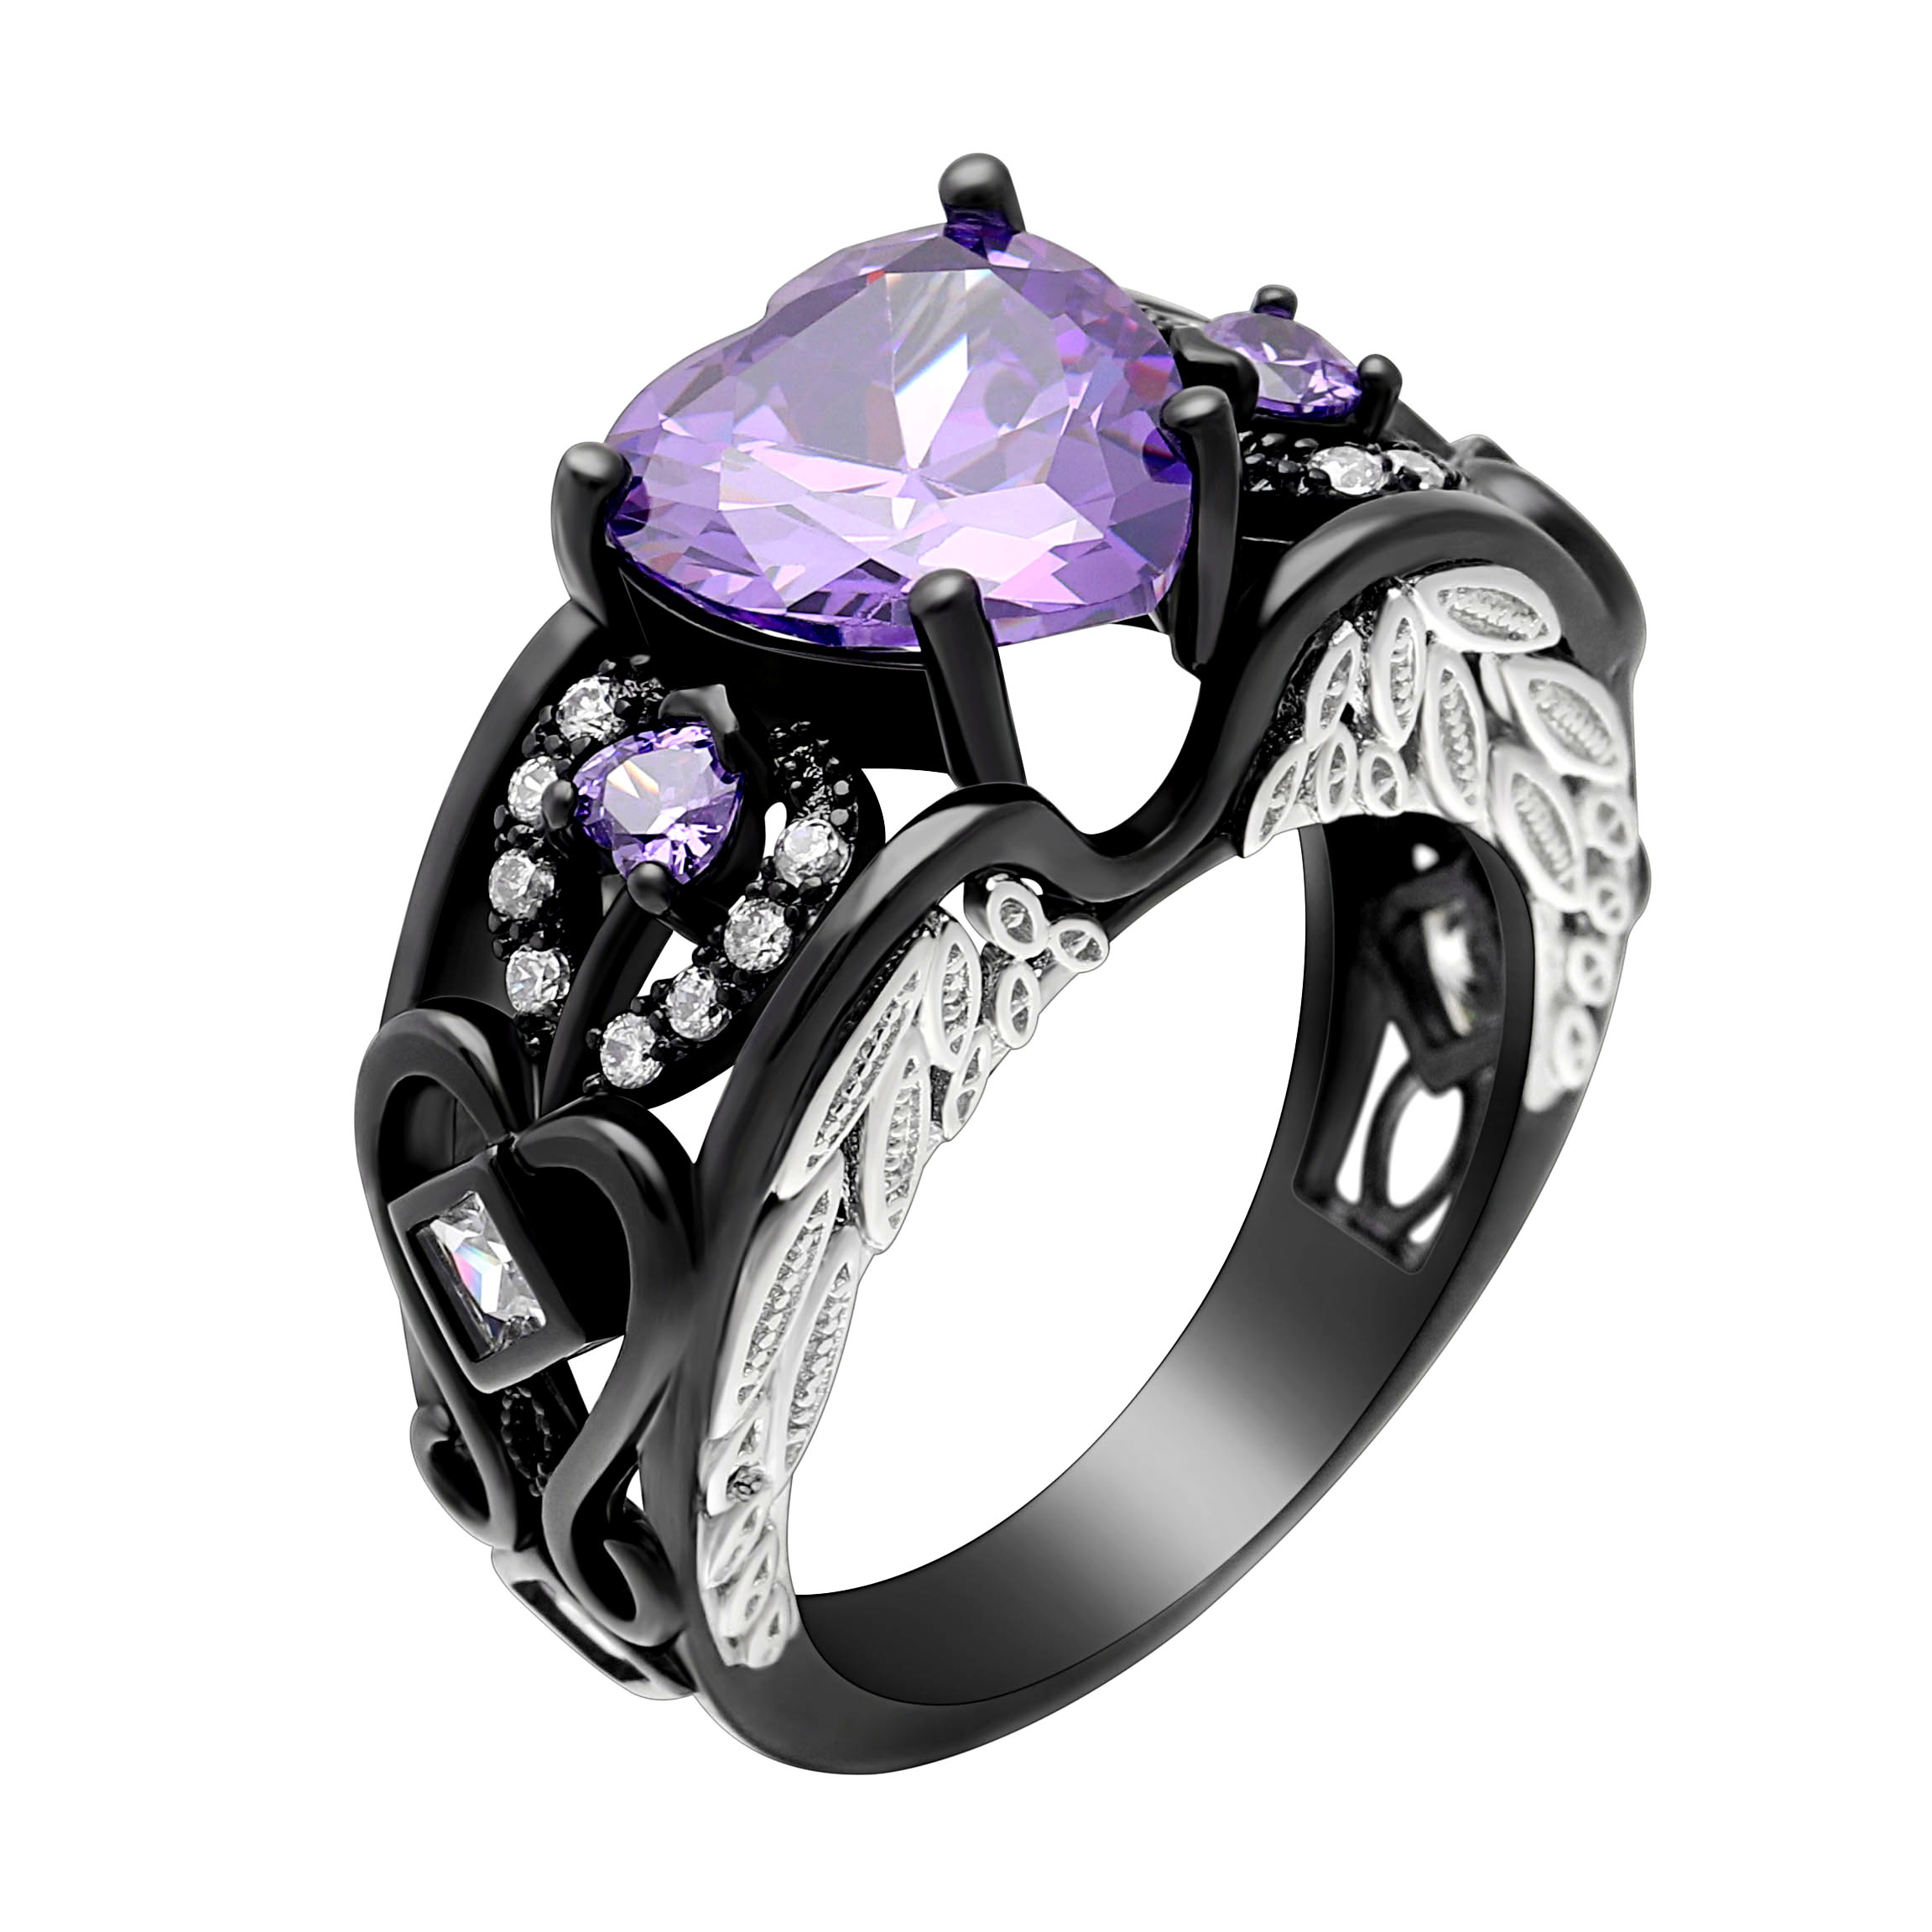 rings engagement birthstone amethist ring s mother valerie kiss february diamond products amethyst